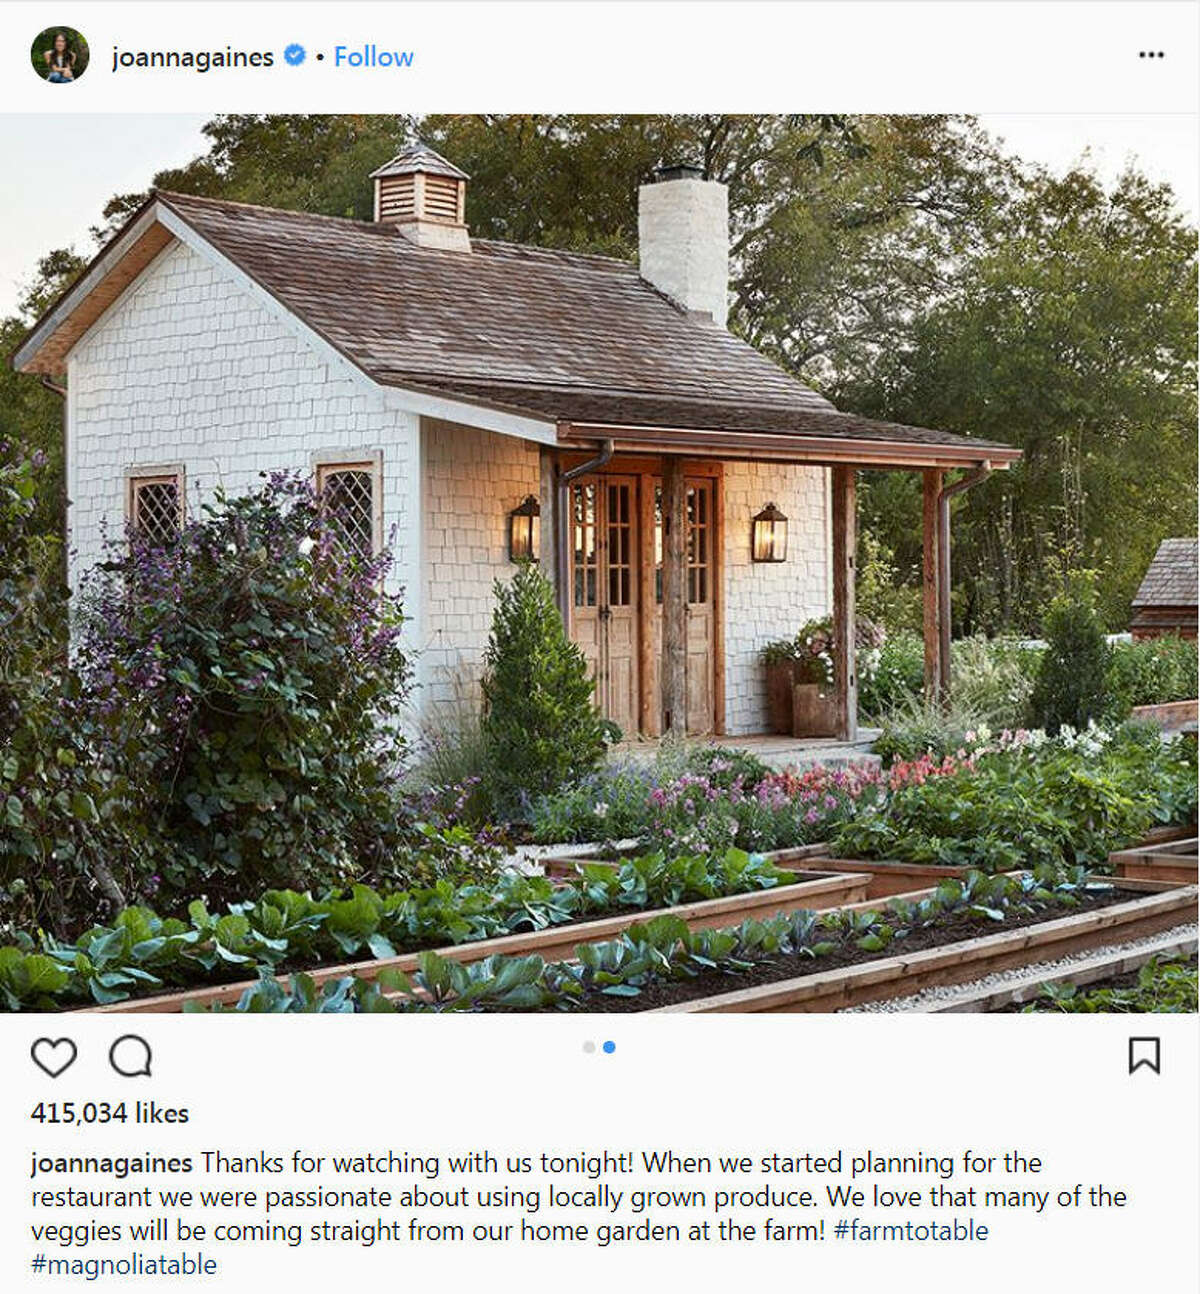 Chip and Joanna Gaines' new restaurant Magnolia Table drew numerous fans and hungry stomachs during its Feb. 2017 opening.Image source: Instagram